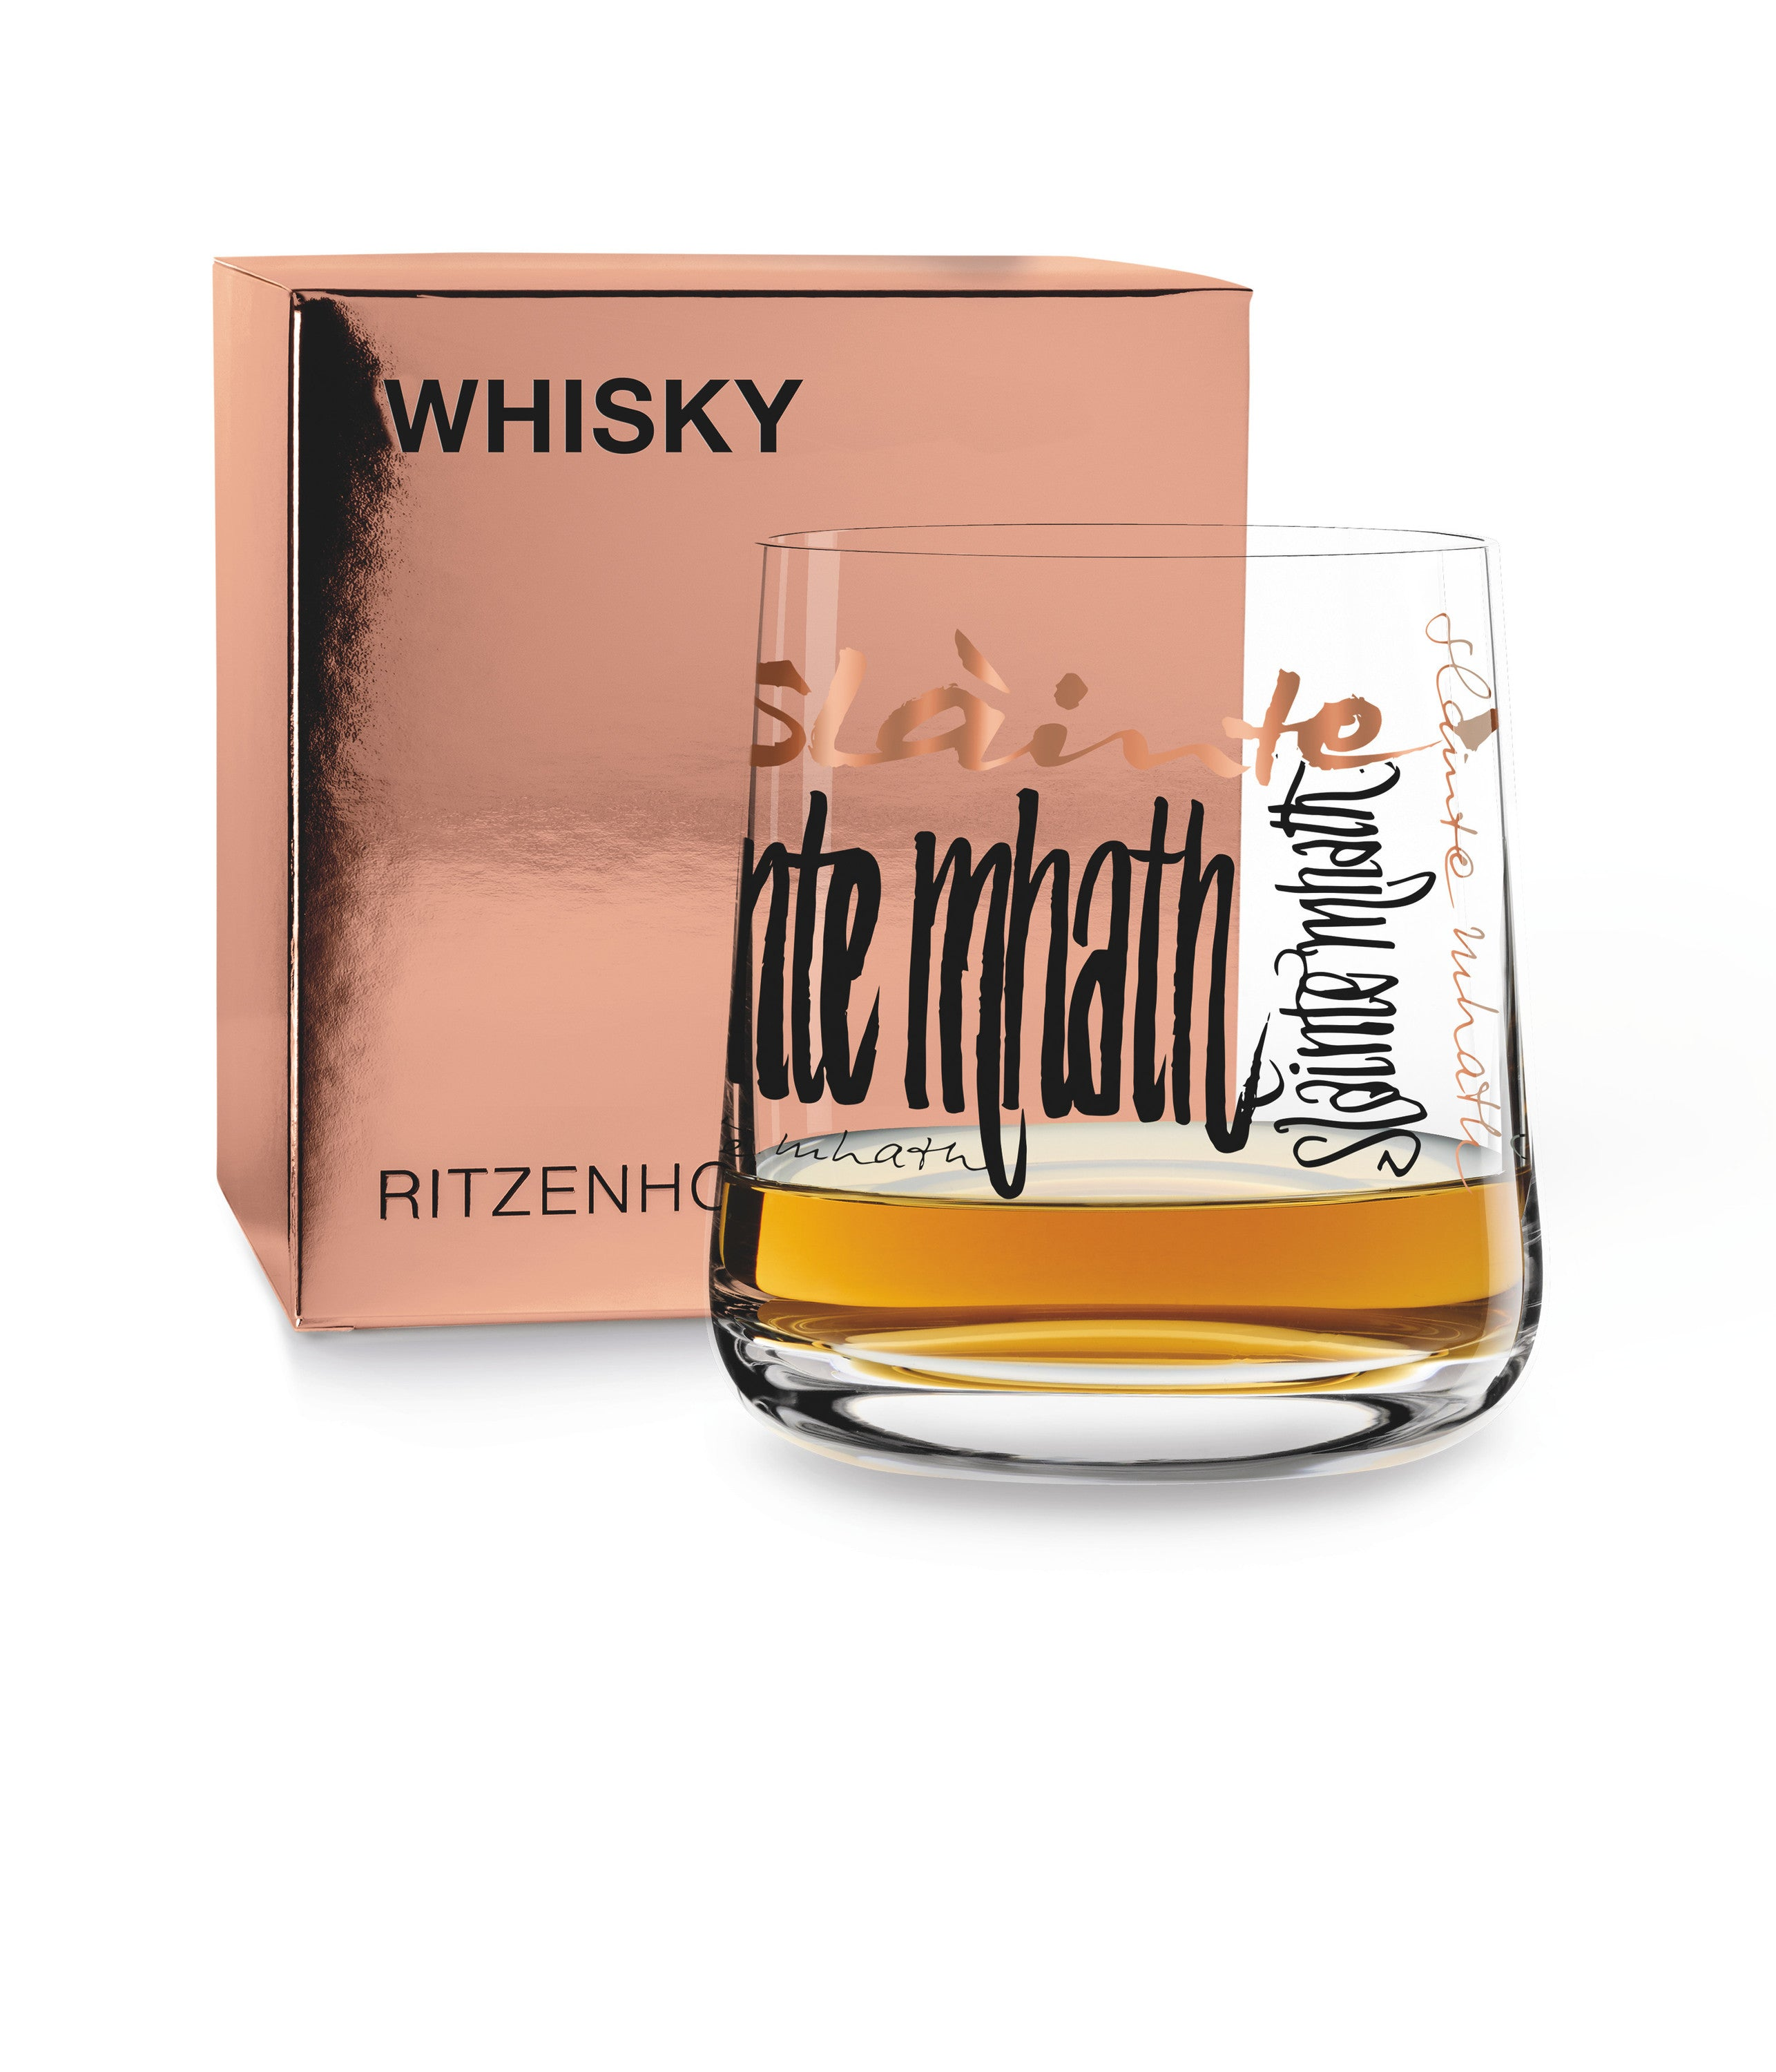 Ritzenhoff Whiskey by Claus Dorsch